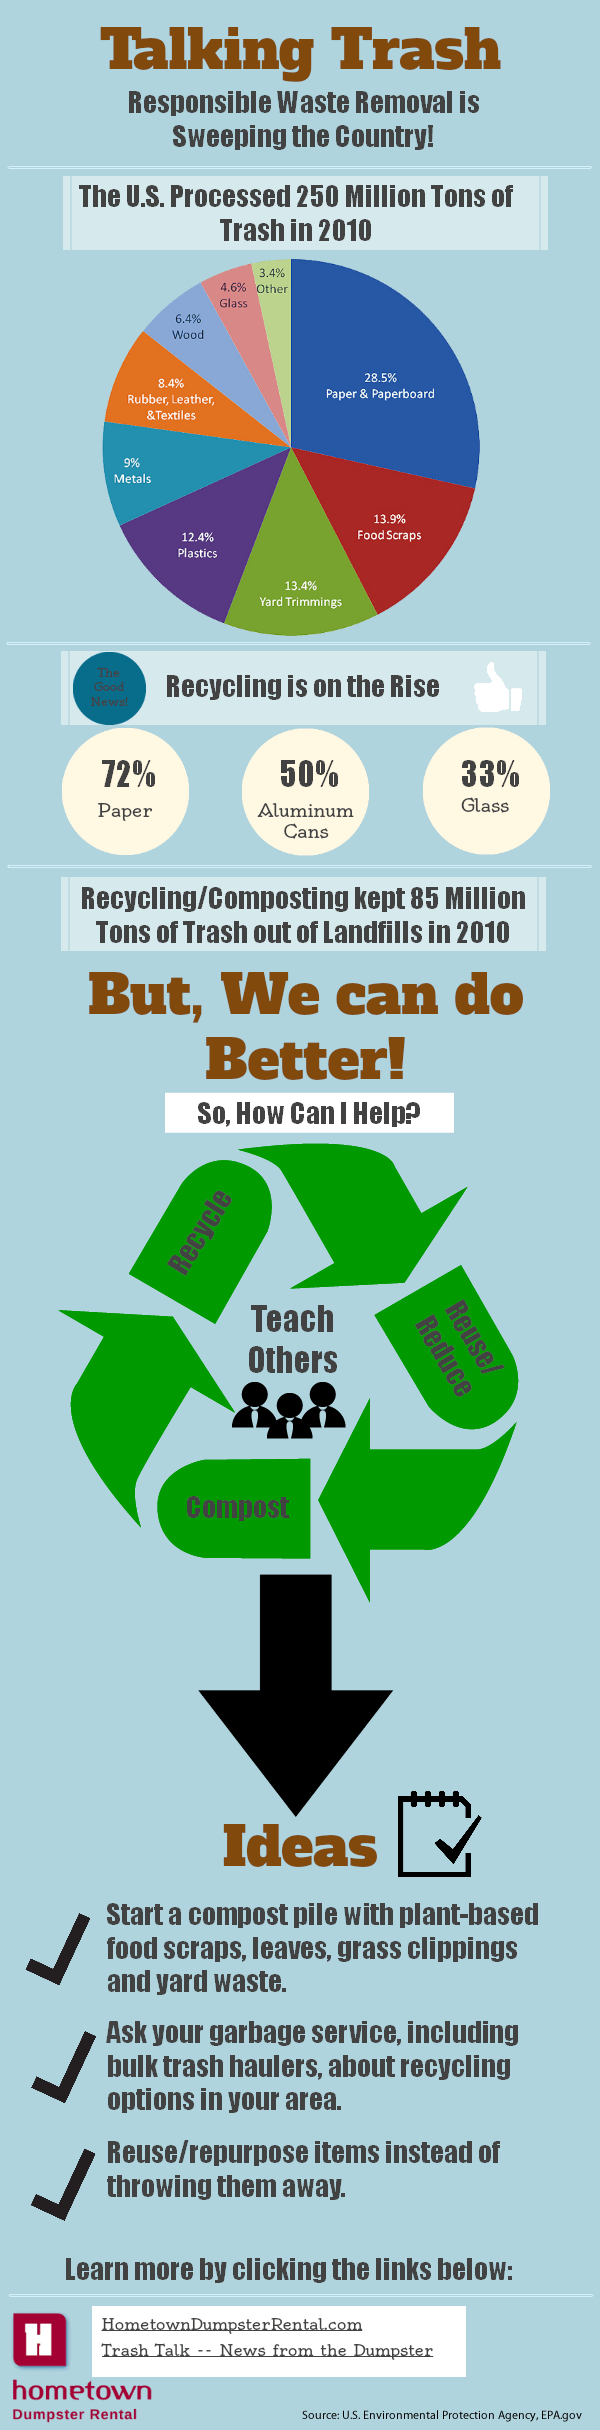 talking trash infographic infographic list